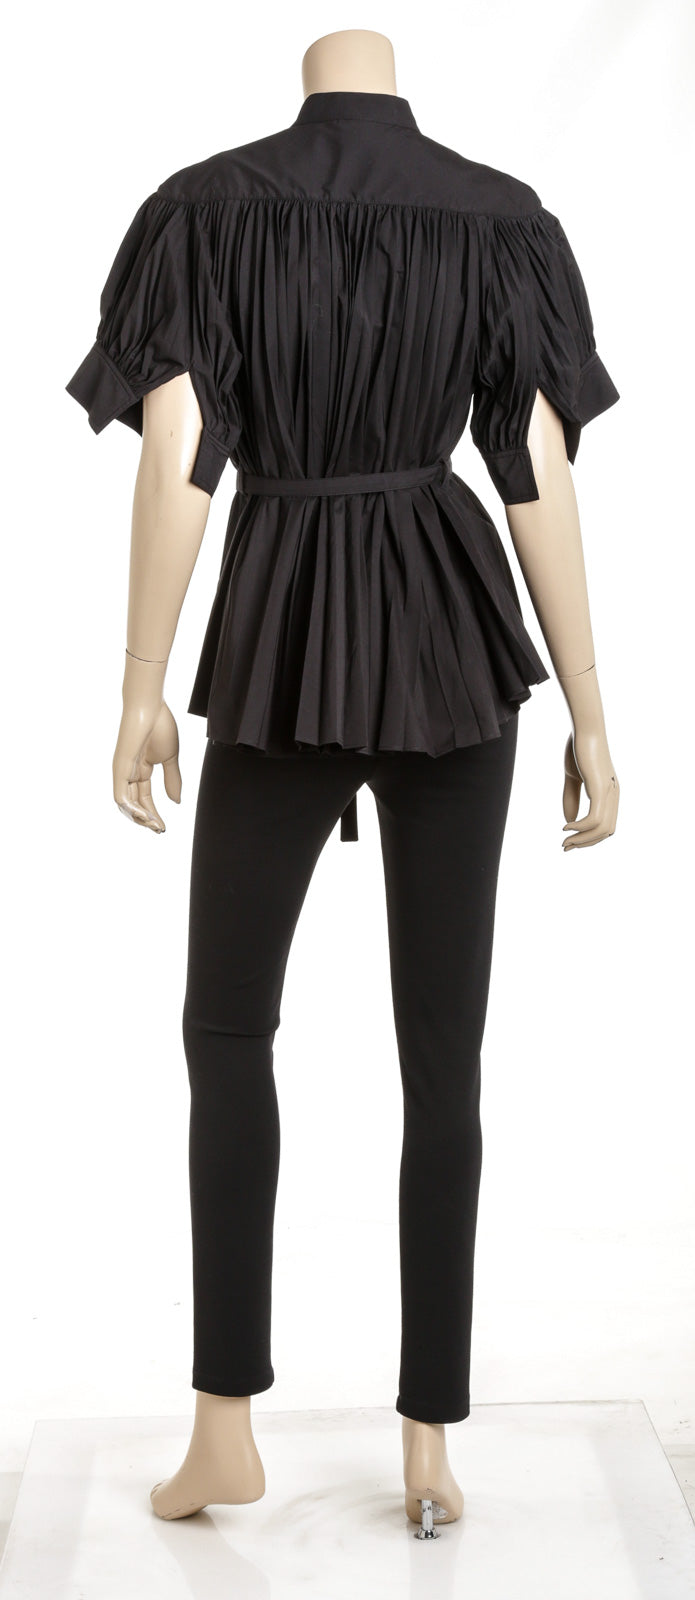 Proenza Schouler Black Pleated Poplin Short-Sleeve Blouse Size 4